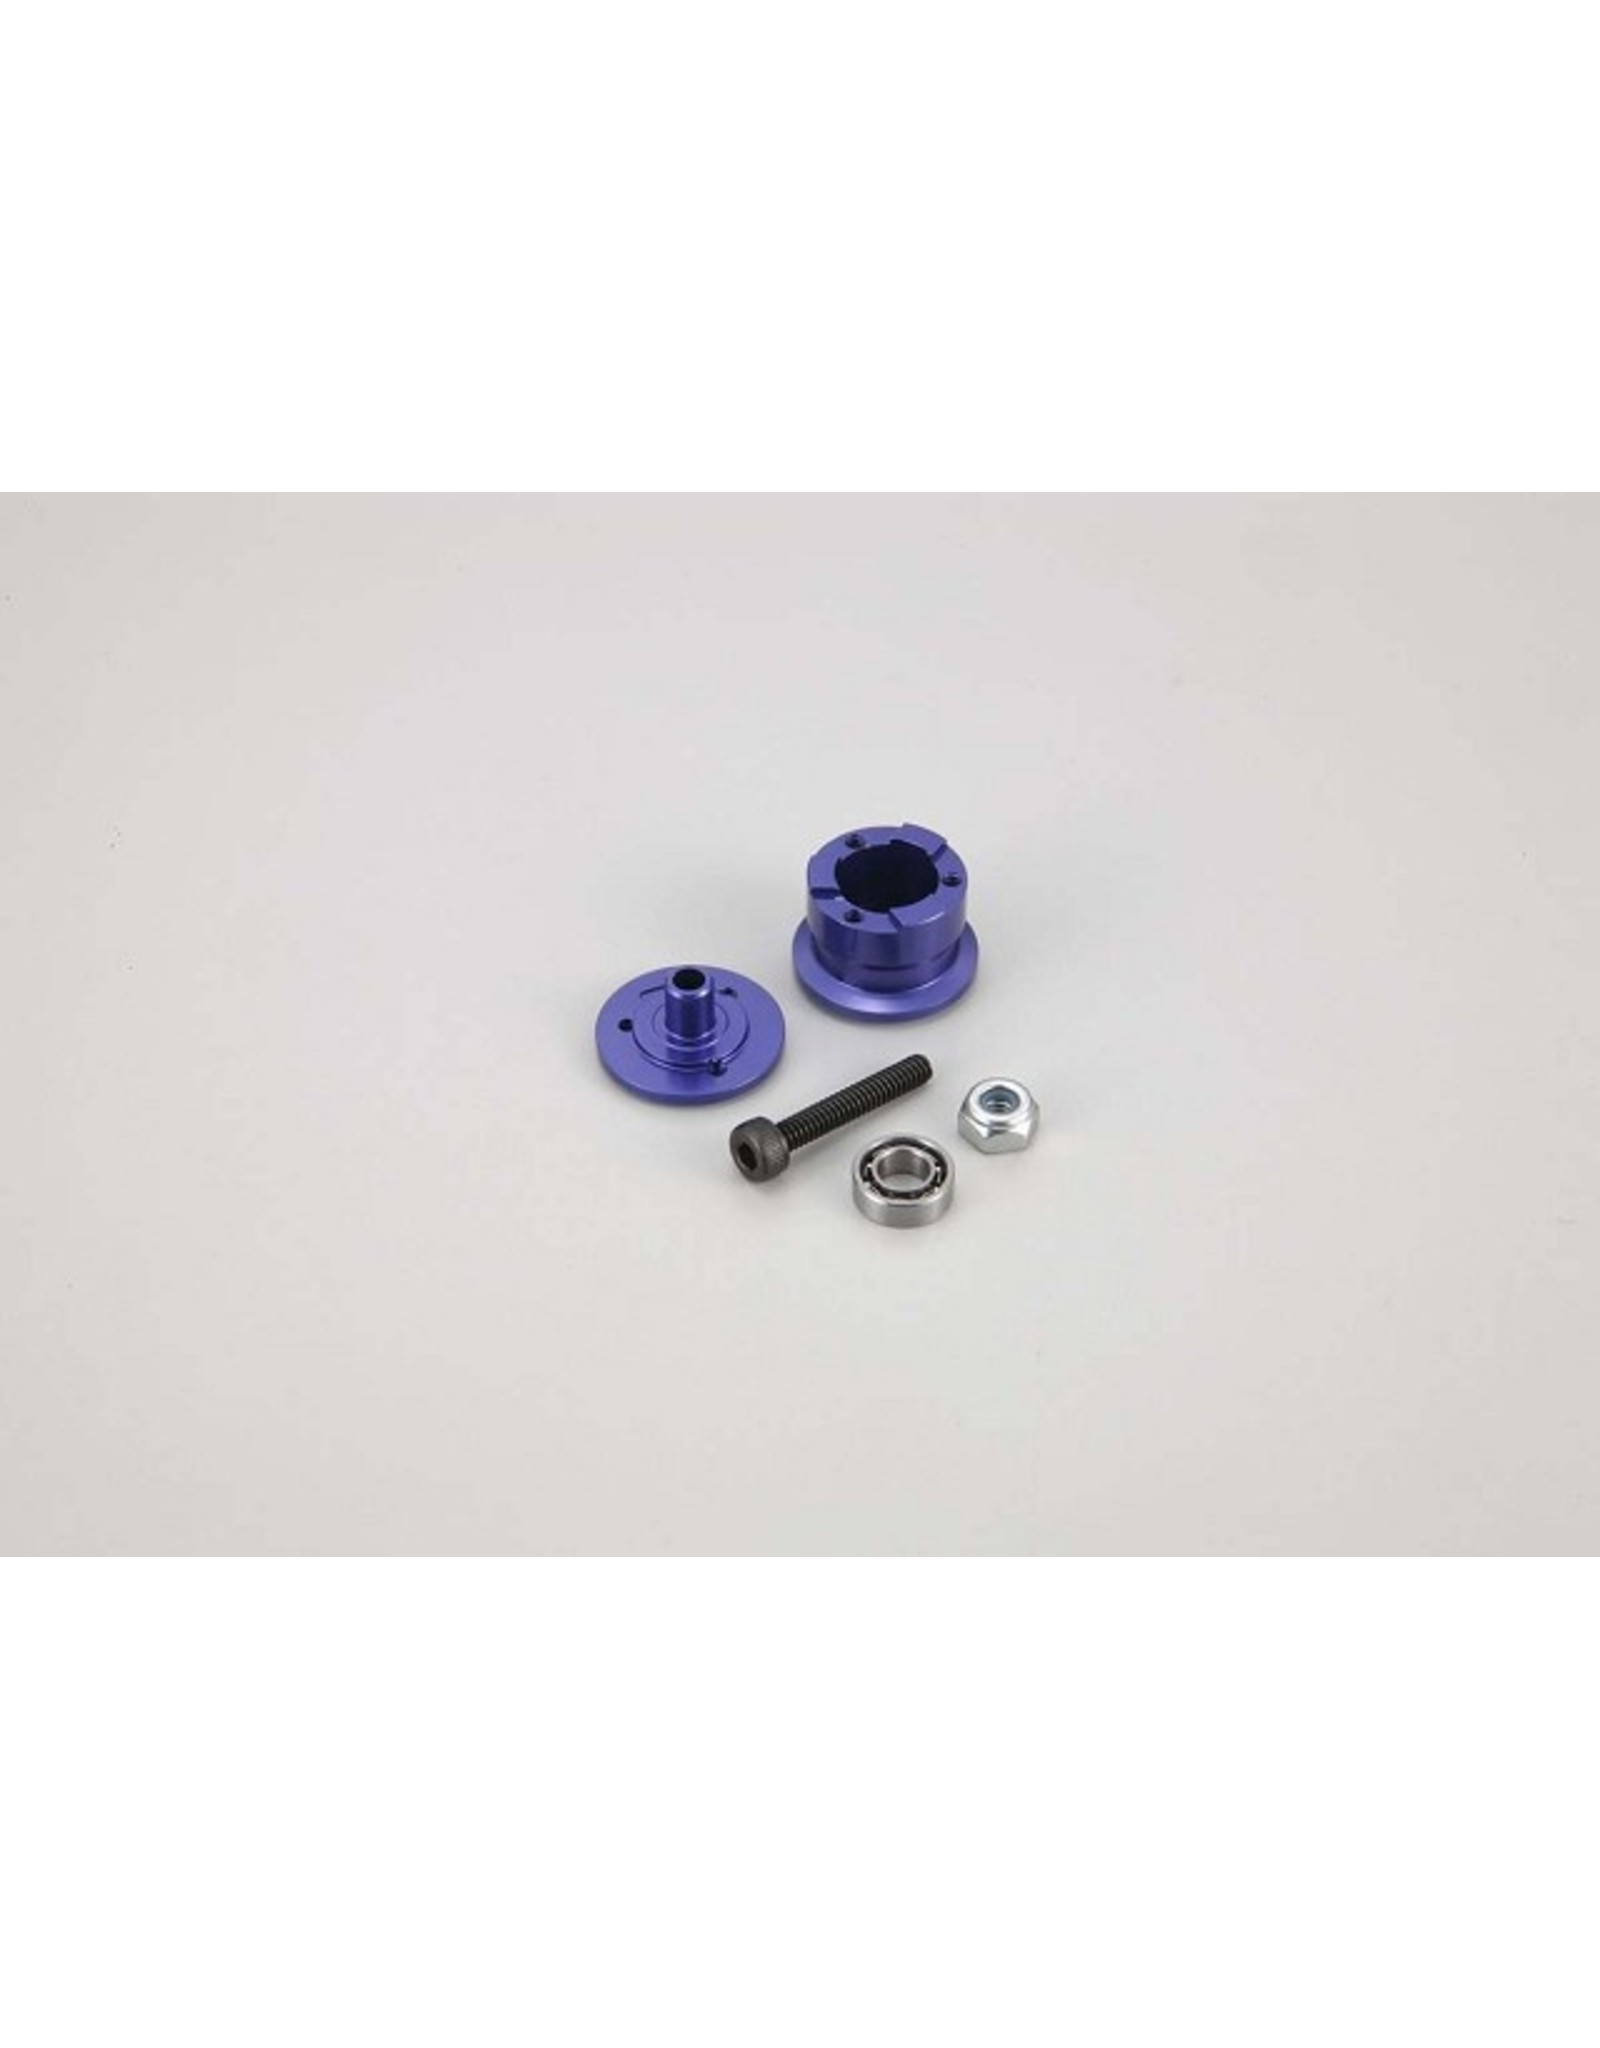 Kyosho Diff Tube Set (for AWD Ball Diff) (MDW018-04)